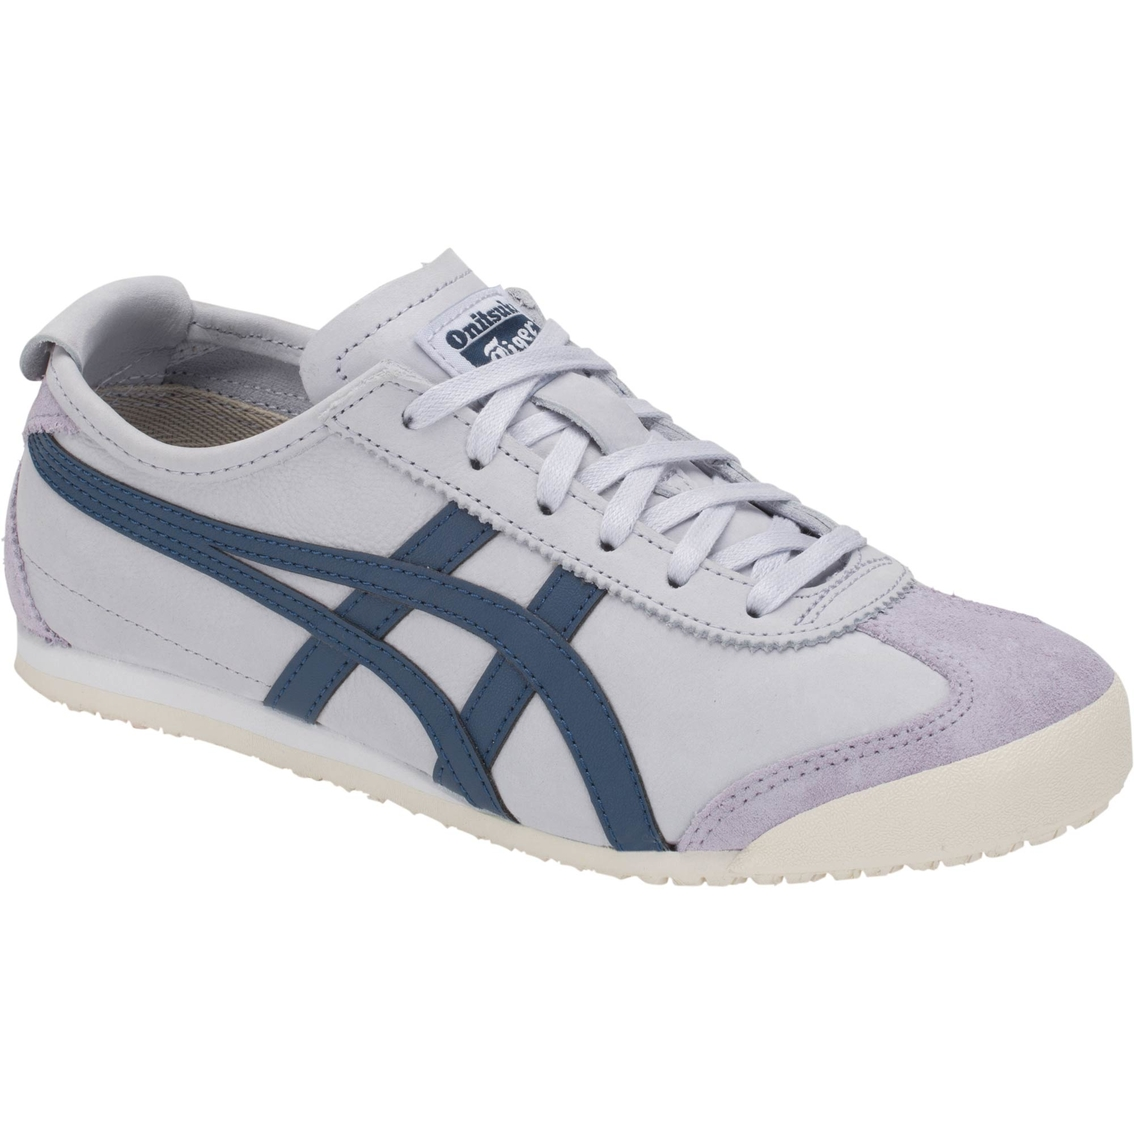 save off faacc e27f8 Asics Men's Onitsuka Tiger Mexico 66 Sneakers | Casuals ...